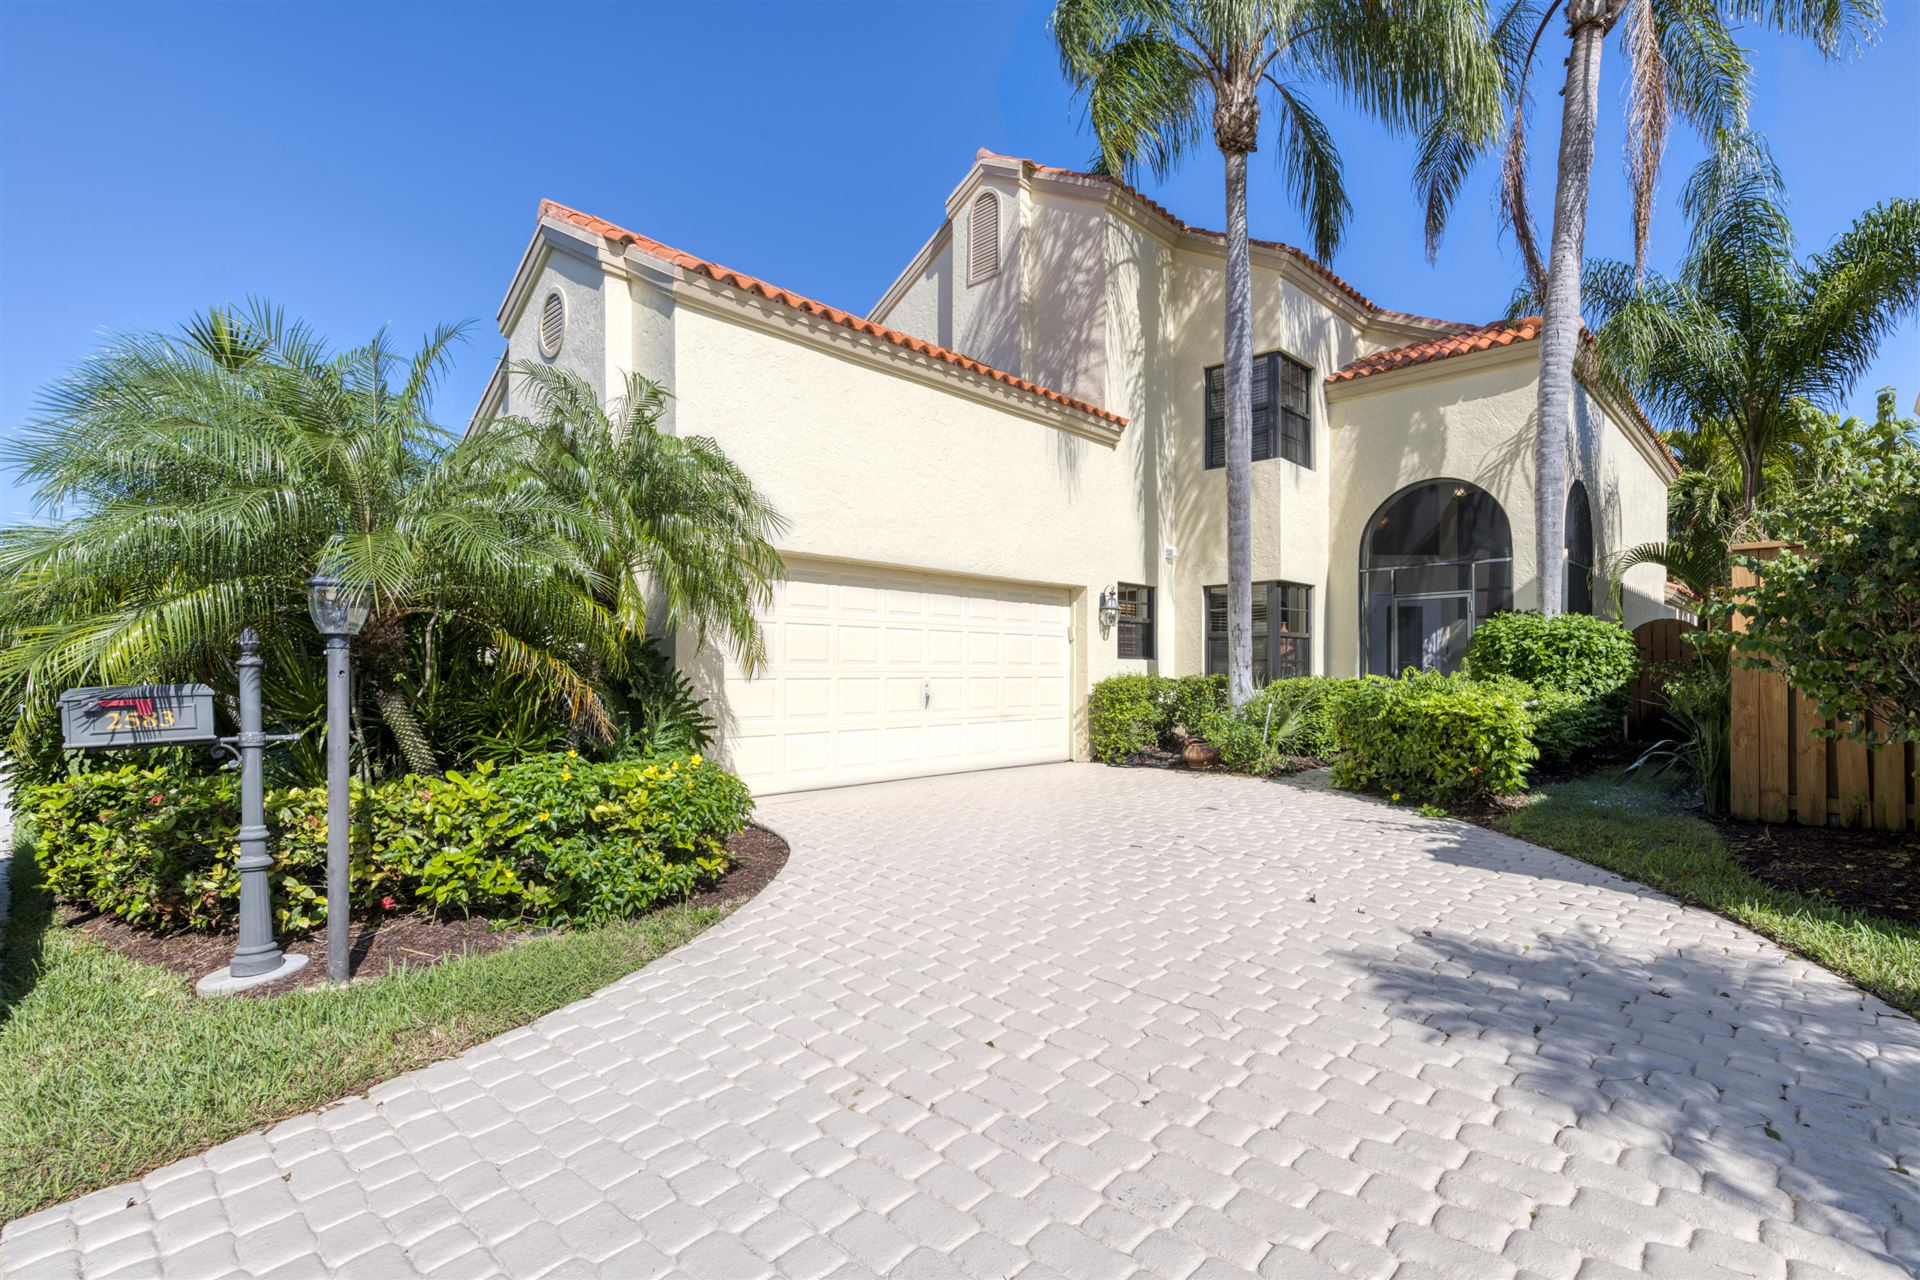 Photo of 2583 La Cristal Circle, Palm Beach Gardens, FL 33410 (MLS # RX-10671340)